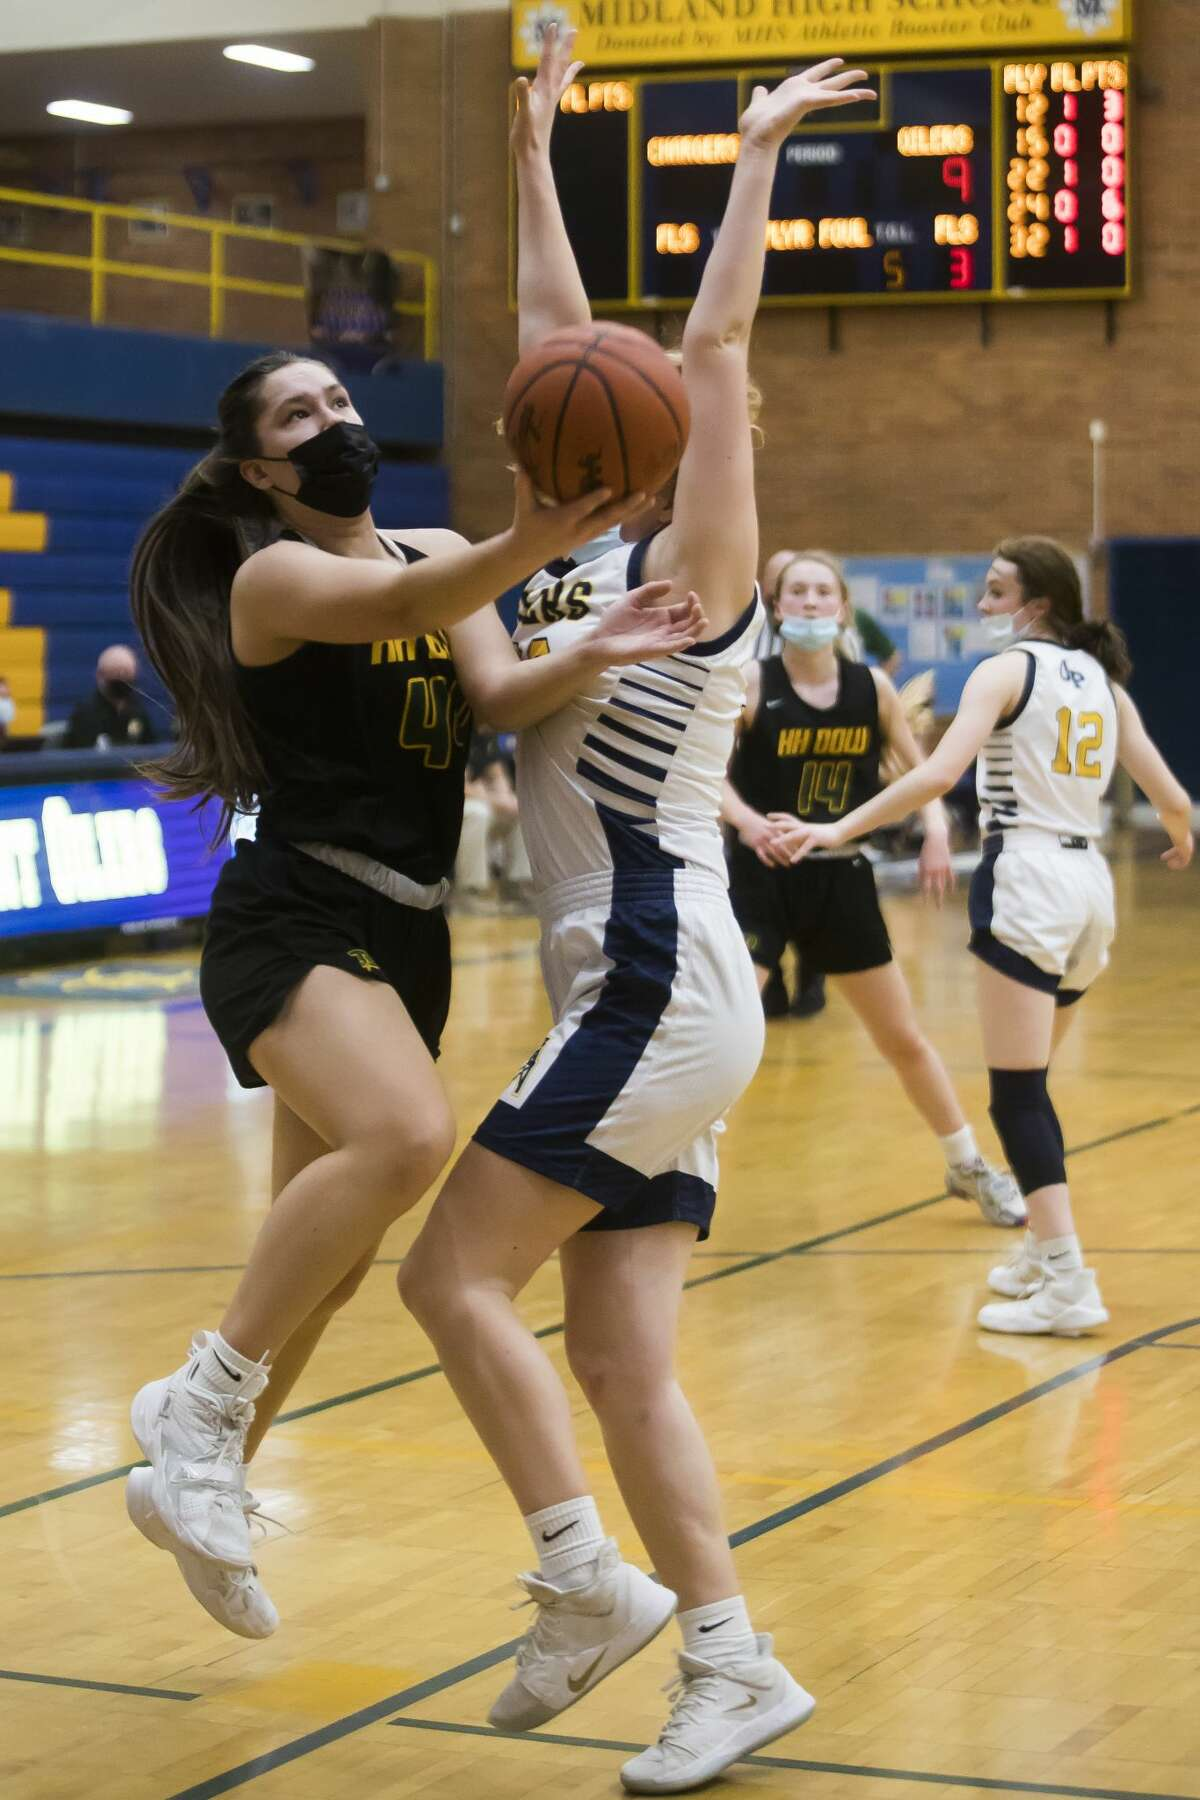 Dow's Abby Rey takes a shot during the Chargers' district semifinal against Mount Pleasant Wednesday, March 24, 2021 at Midland High School. (Katy Kildee/kkildee@mdn.net)